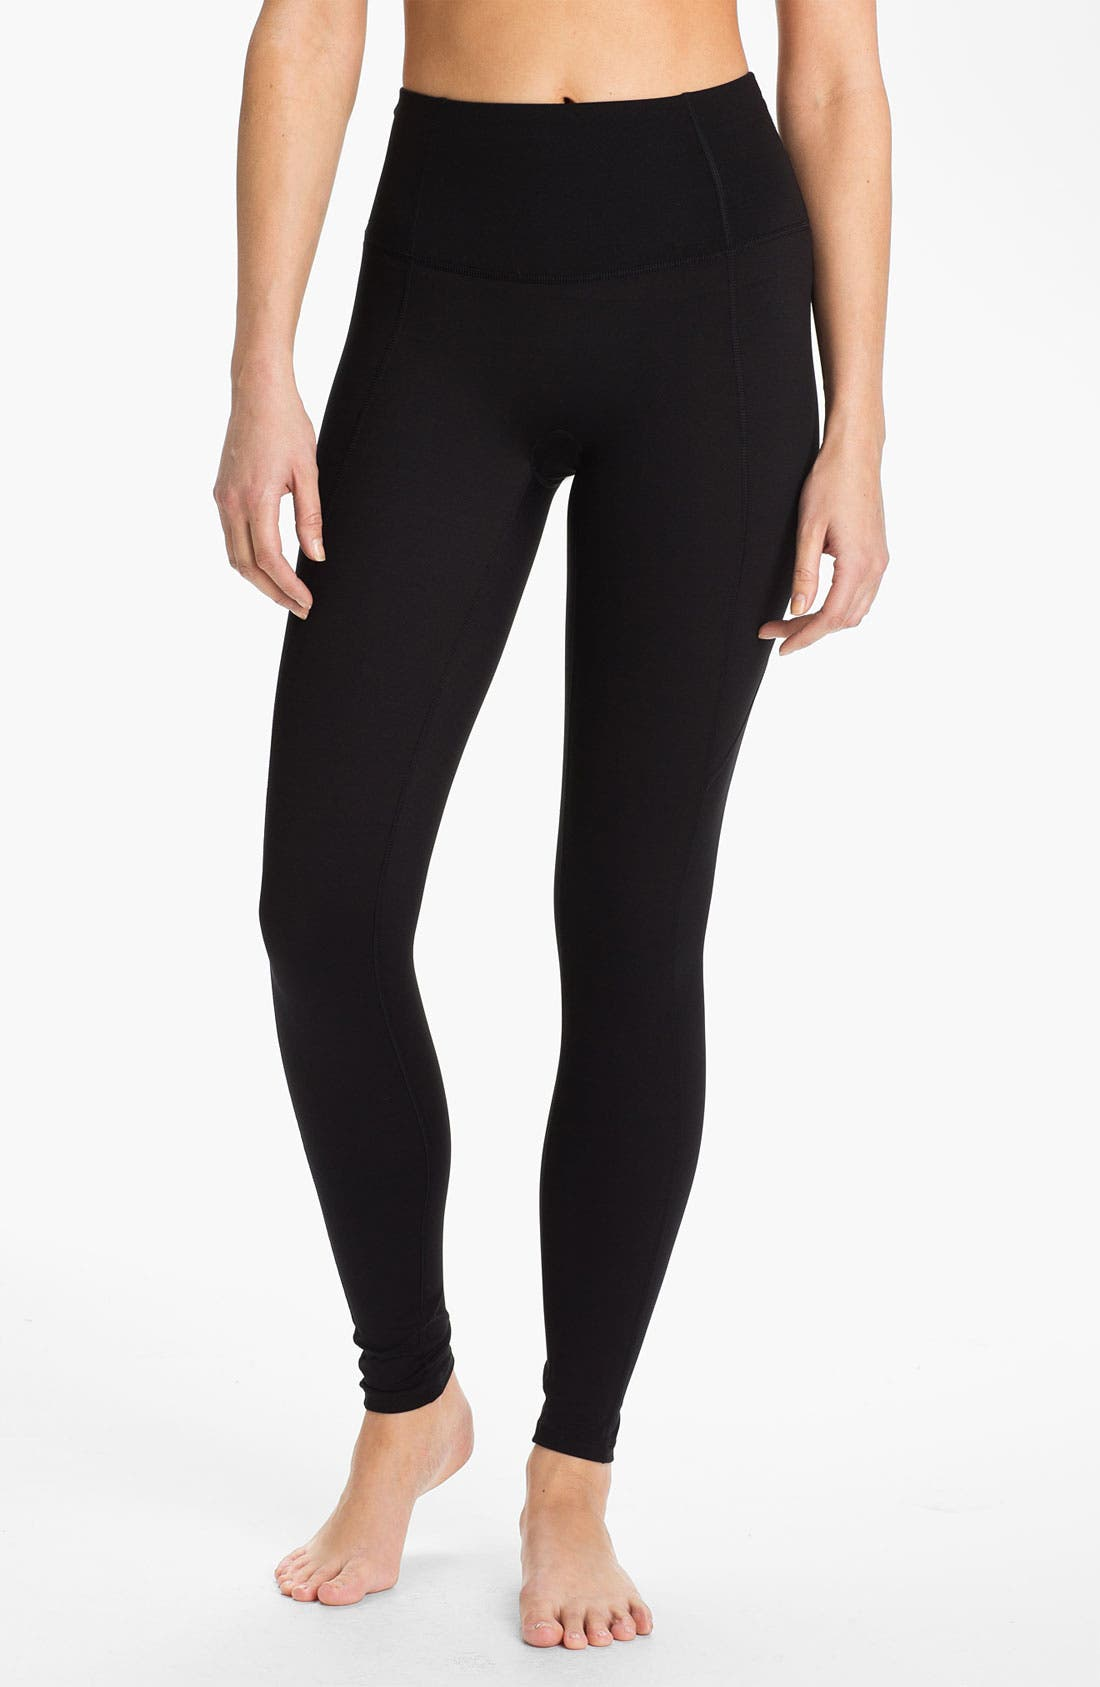 Main Image - SPANX® Shaping Compression Activewear Leggings